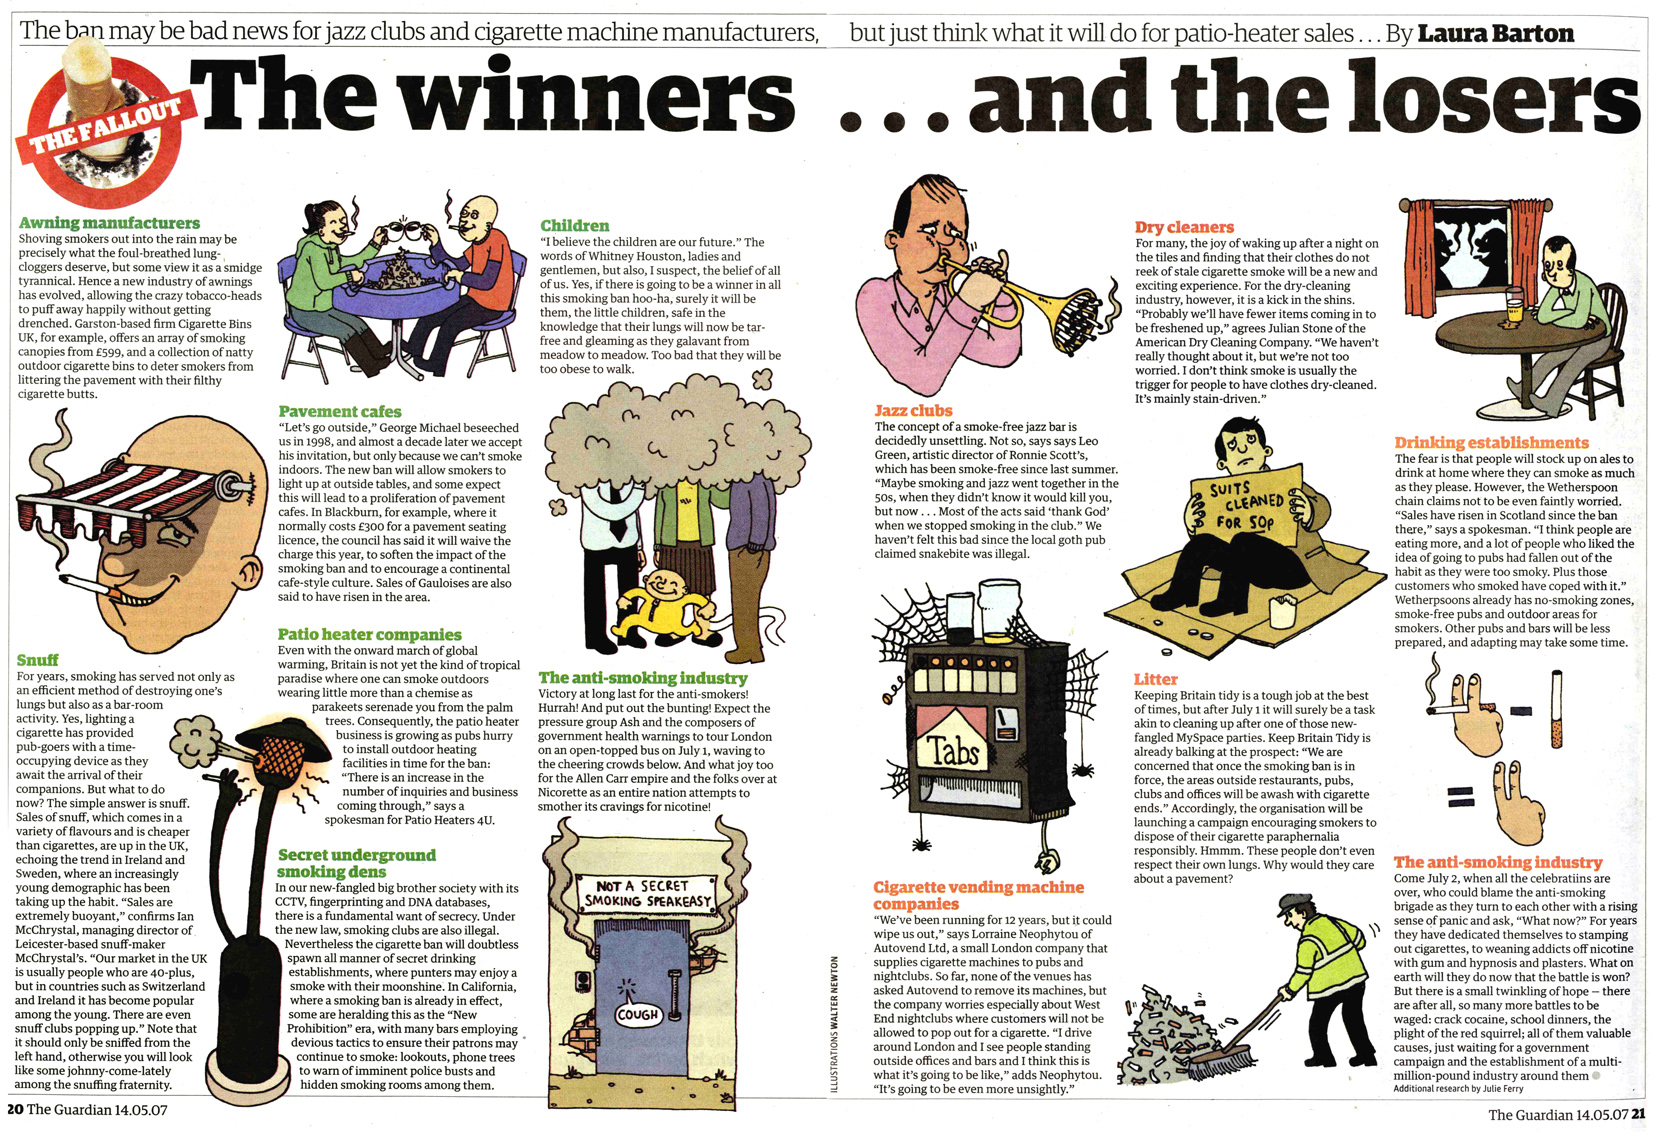 Winners And Losers Of The Smoking Ban DPS / The Guardian